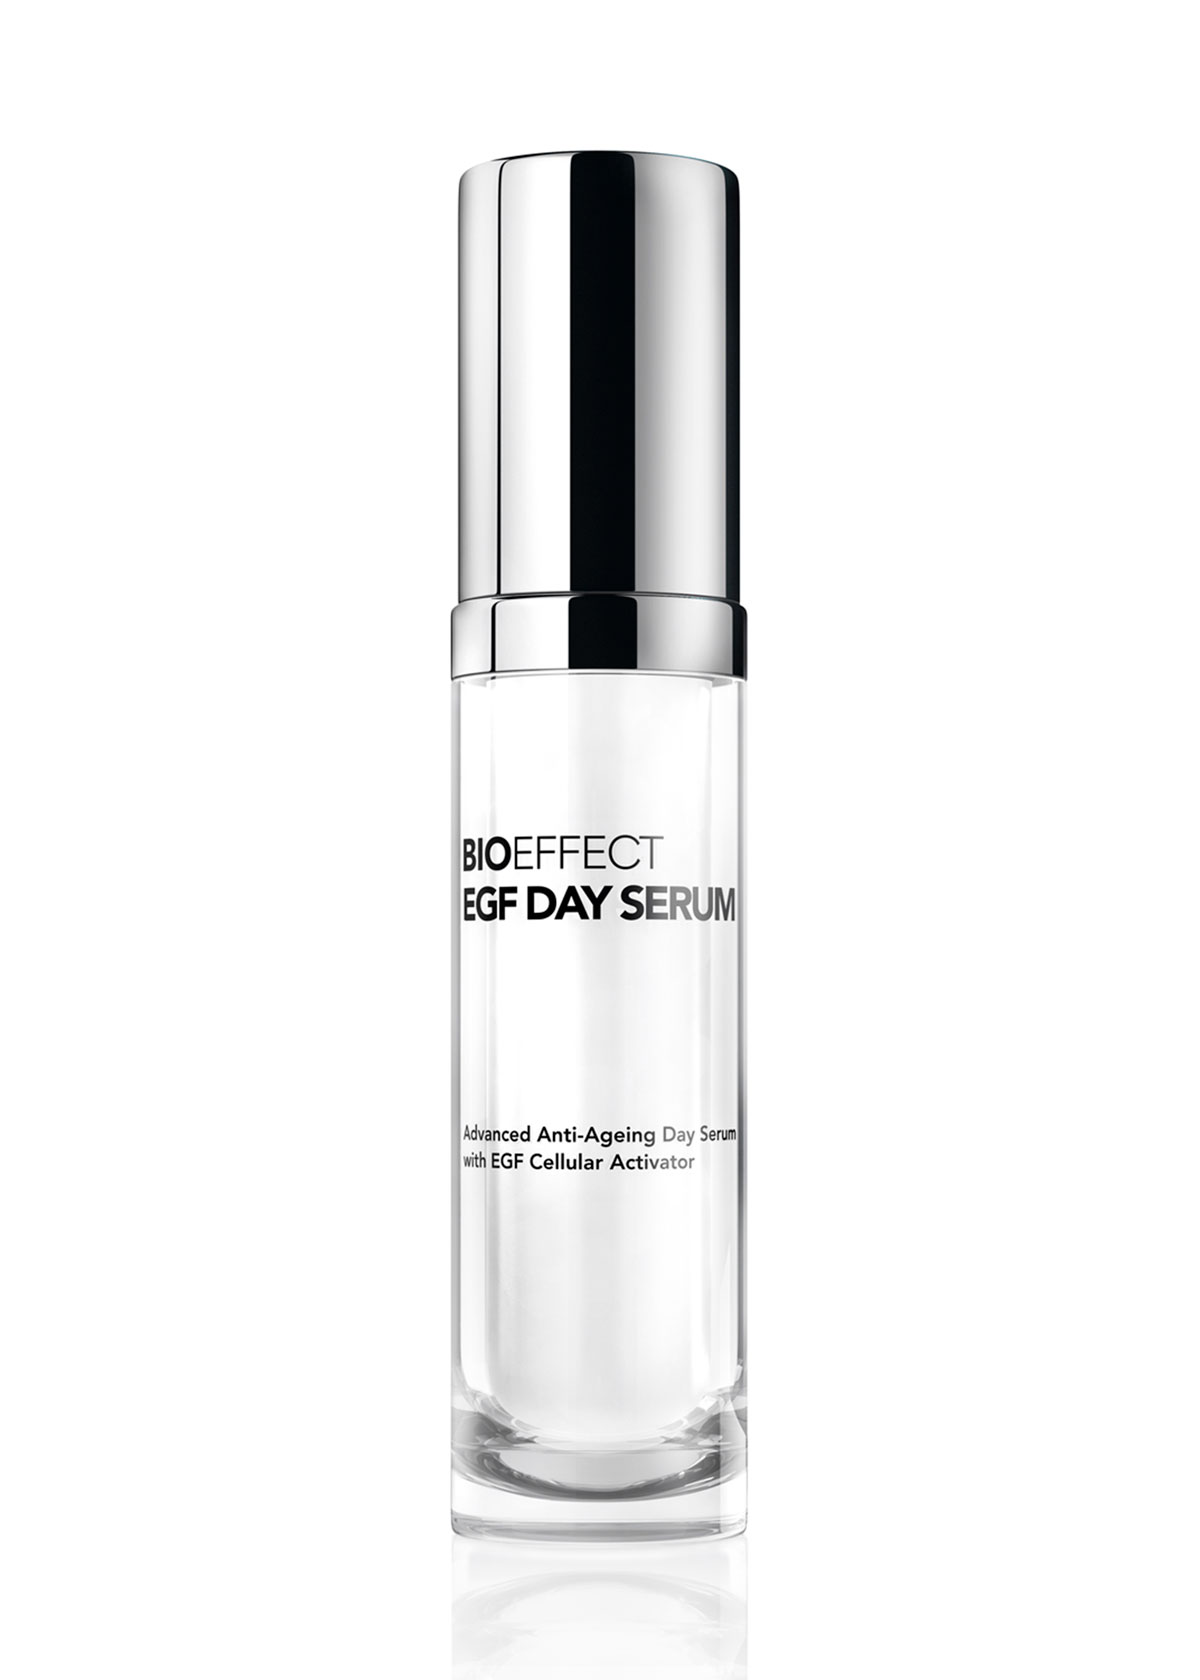 Bioeffect DAY SERUM, 1.0 OZ./ 30 ML